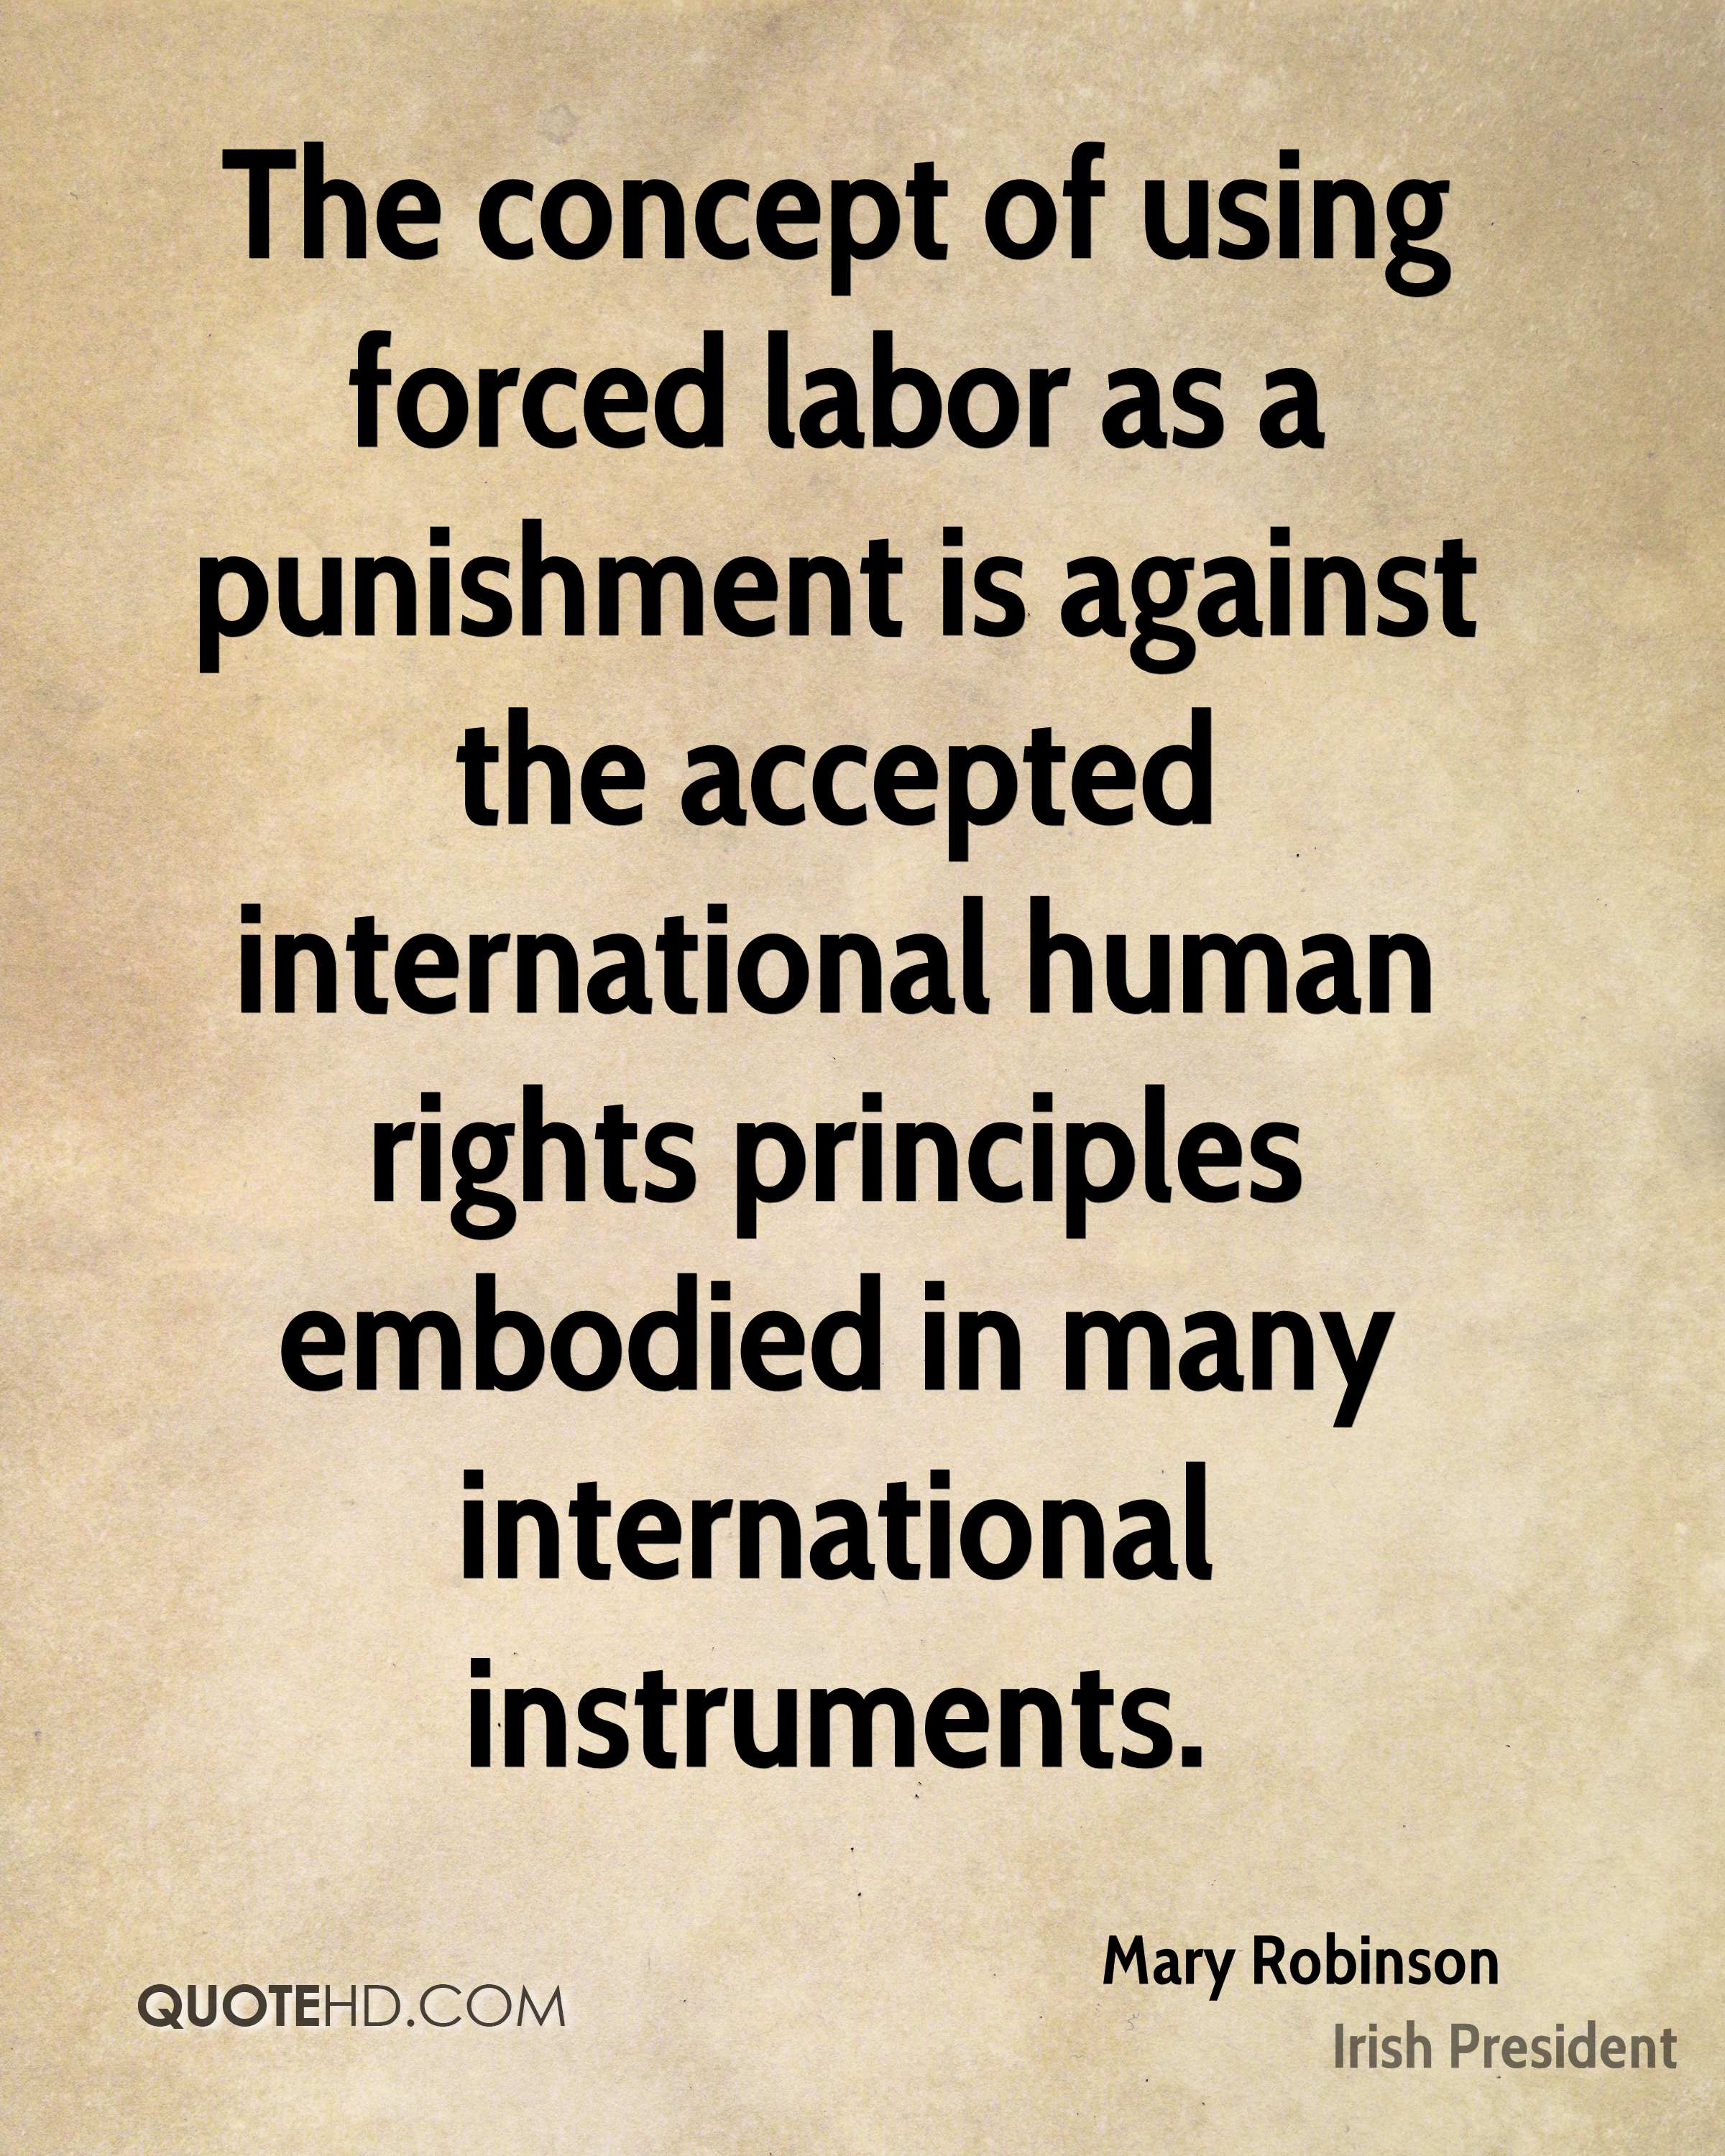 The concept of using forced labor as a punishment is against the accepted international human rights principles embodied in many international instruments.